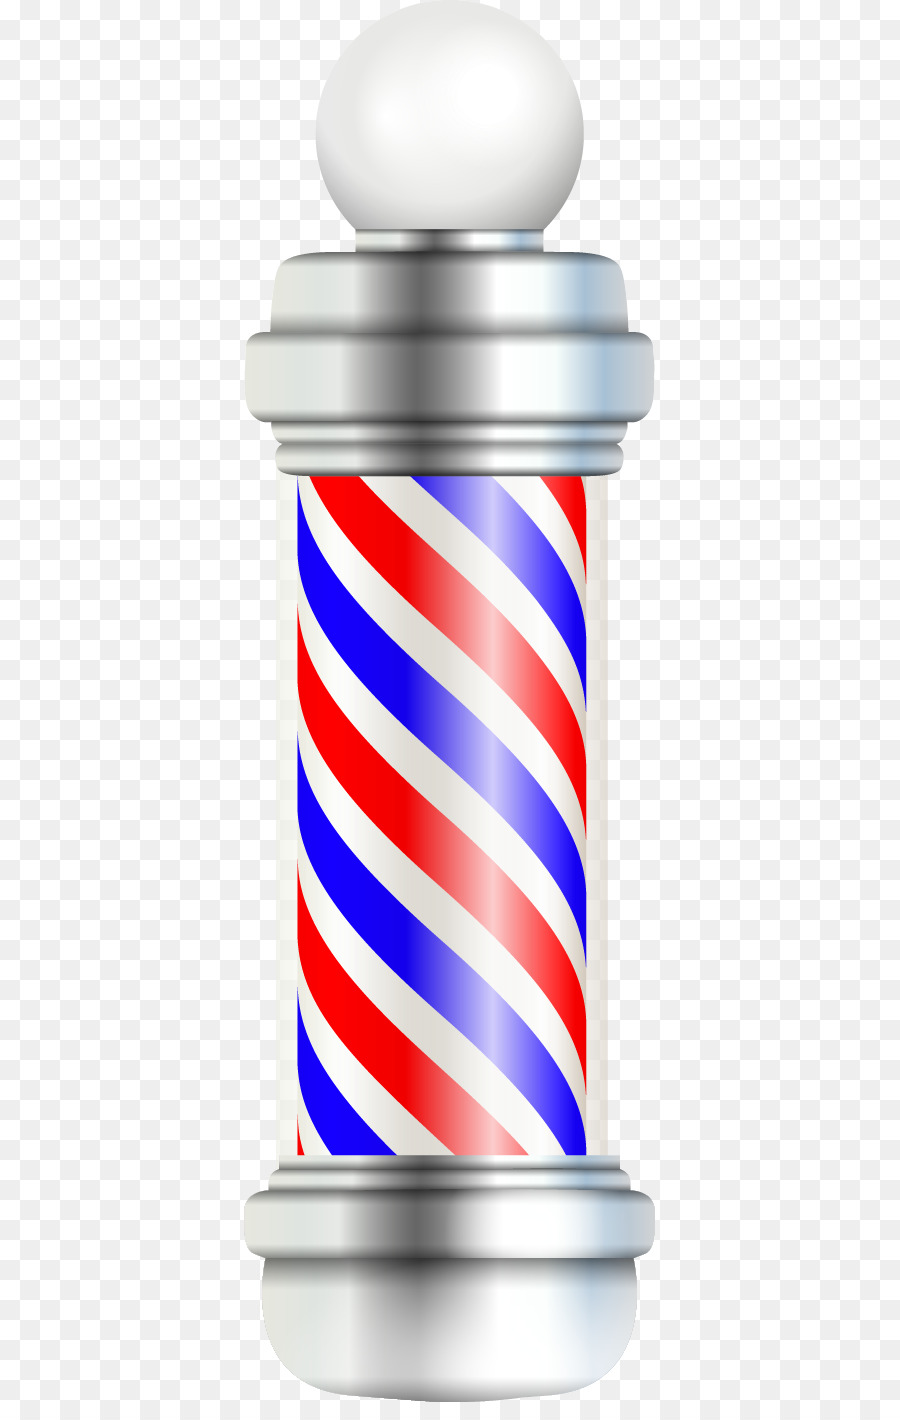 Barbershop Pole Png, Transparent PNG, png collections at dlf.pt.